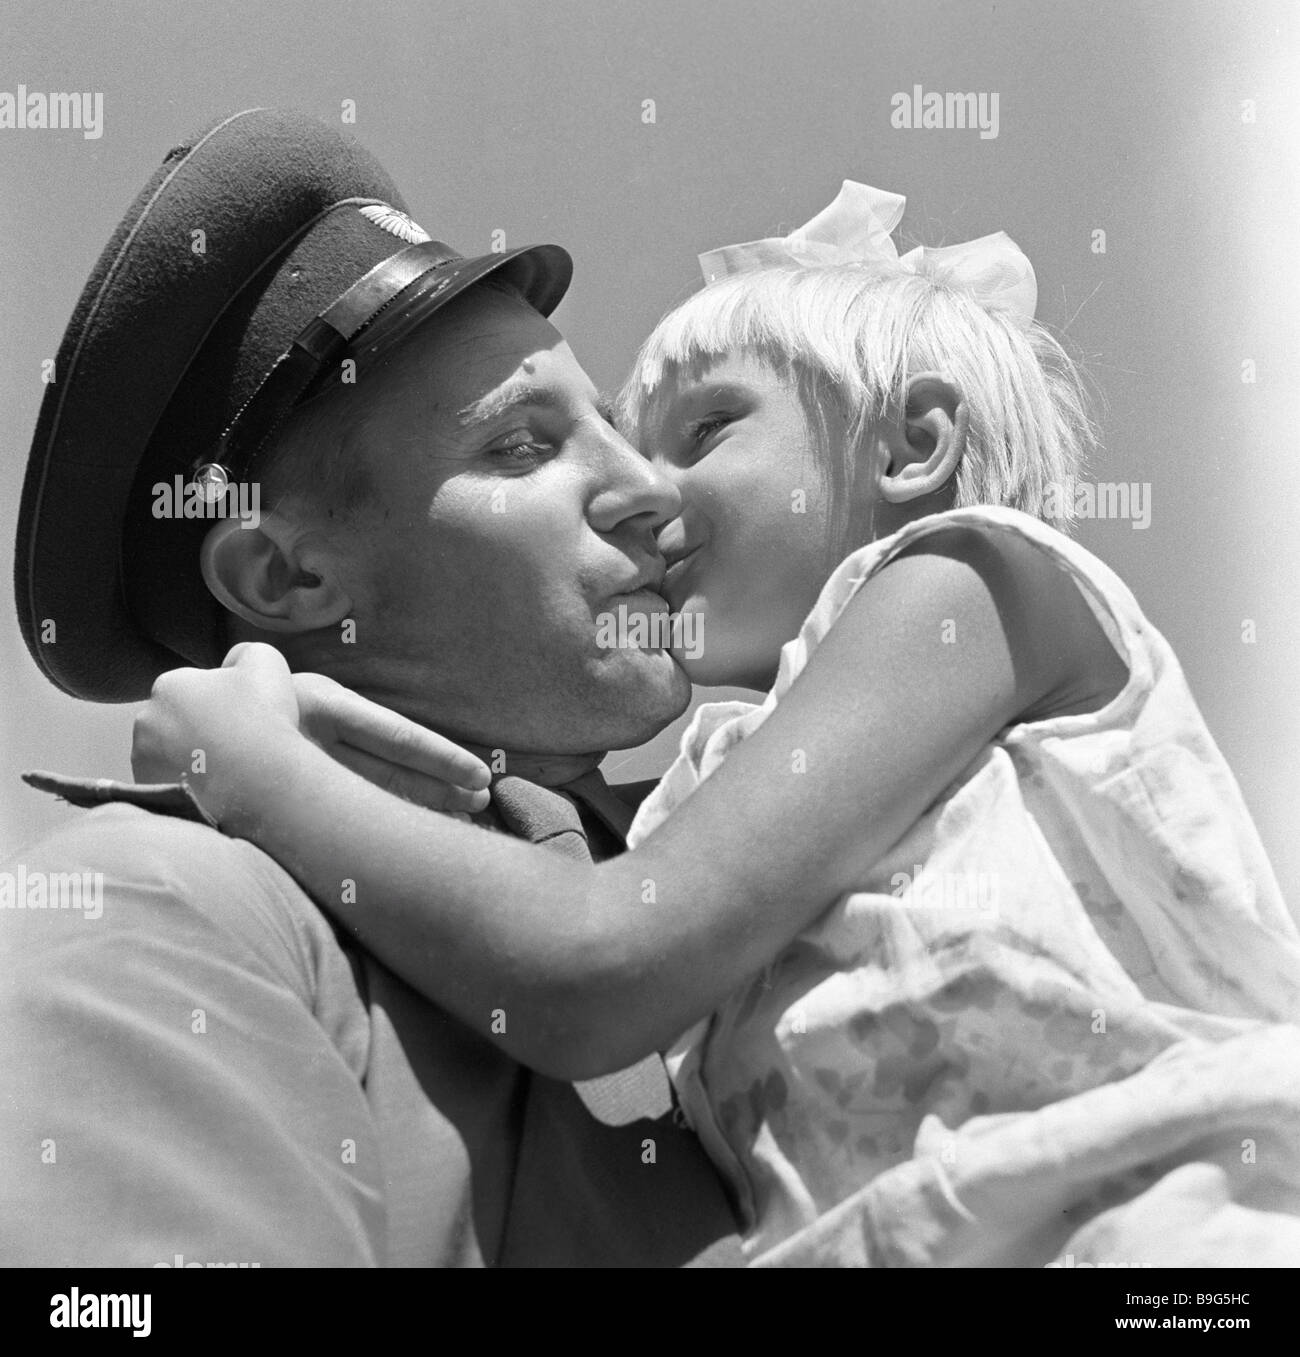 A participant in the Soviet Chinese border conflict meeting with his daughter after hospital discharge - Stock Image